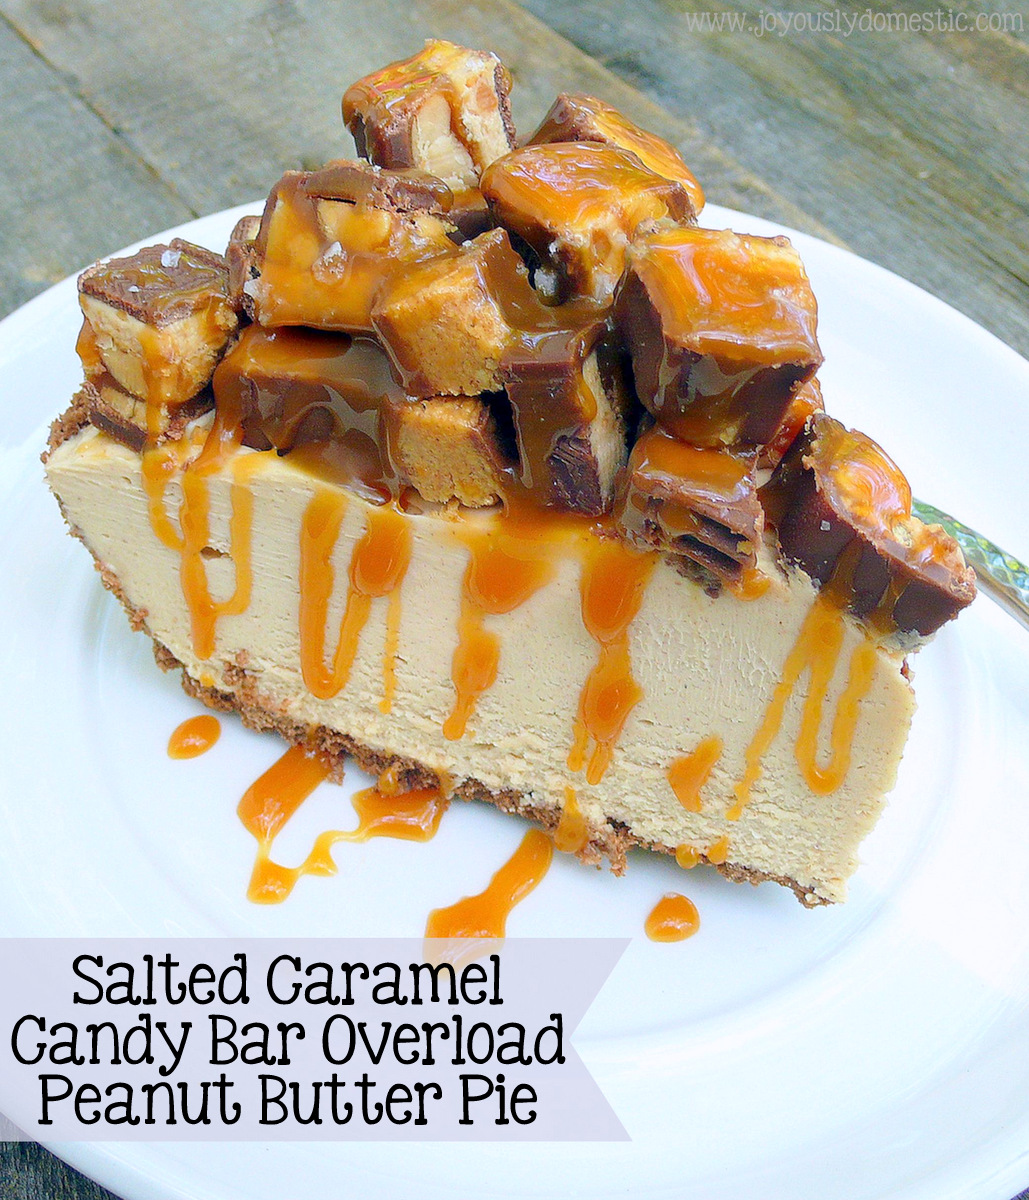 Joyously Domestic: Salted Caramel Candy Bar Overload Peanut Butter Pie